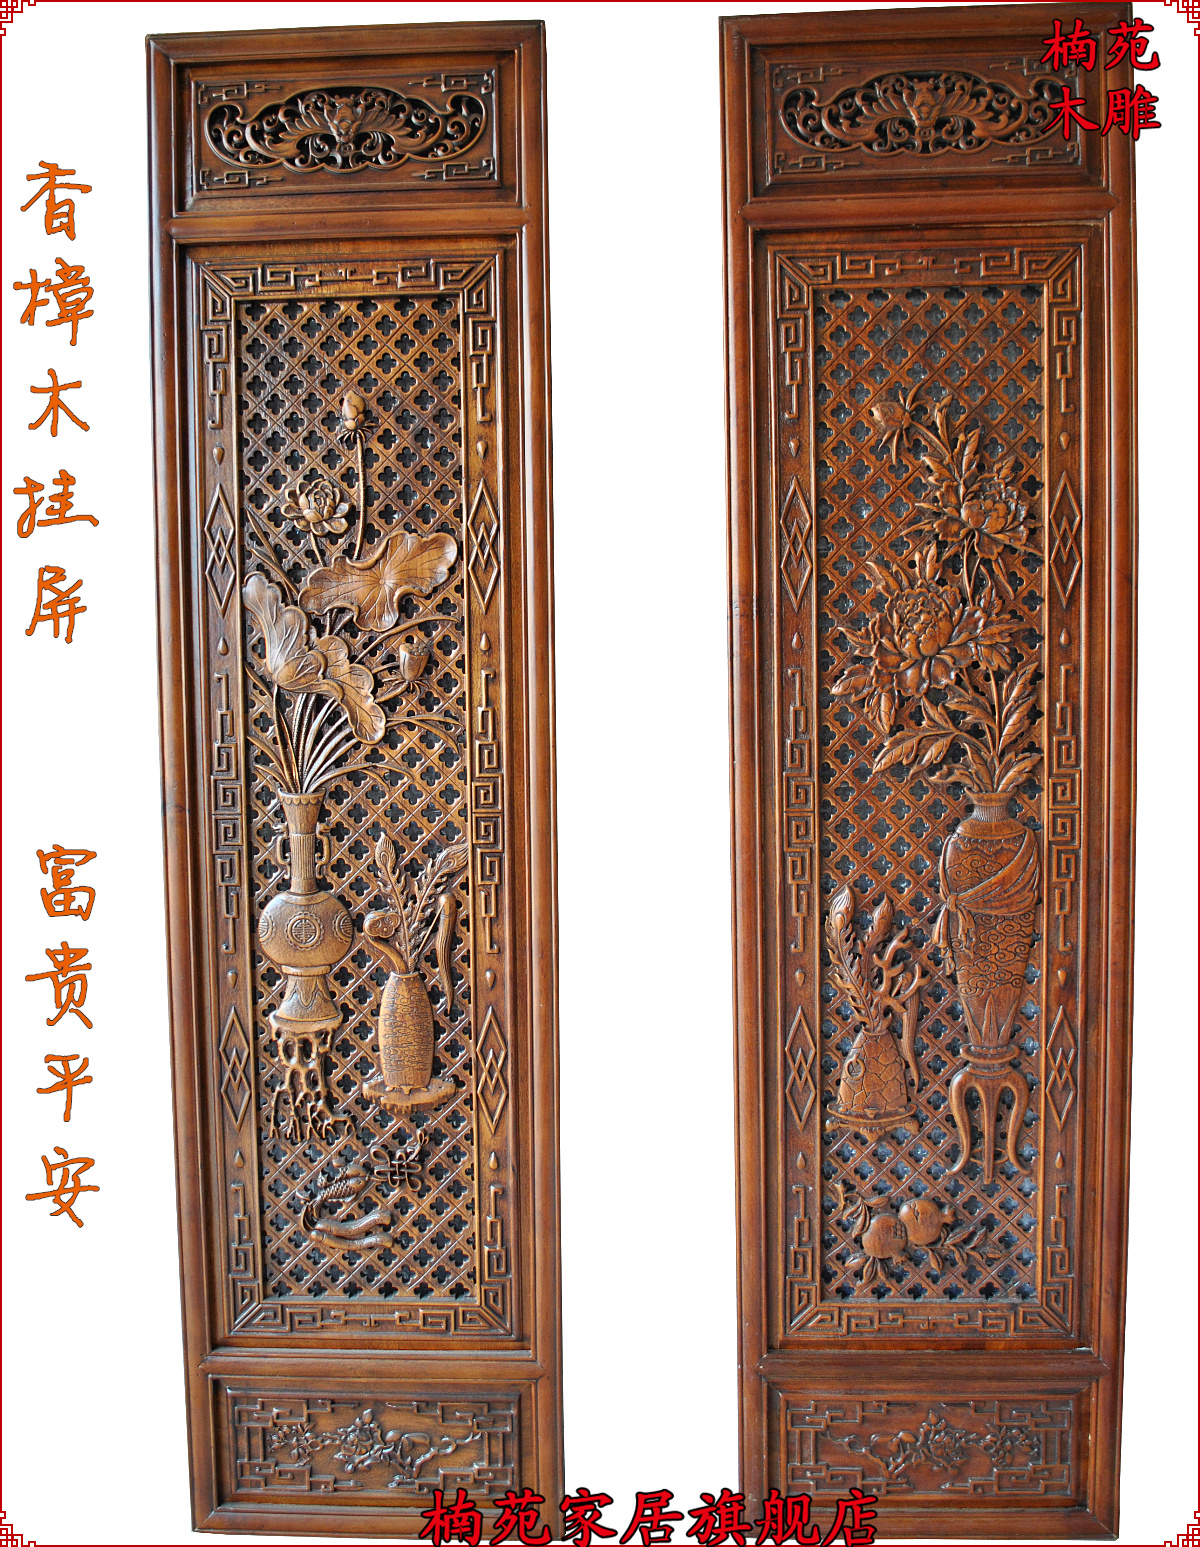 Tv backdrop dongyang wood carving pendant chinese screen wall screen camphor wood archaized wealth peace